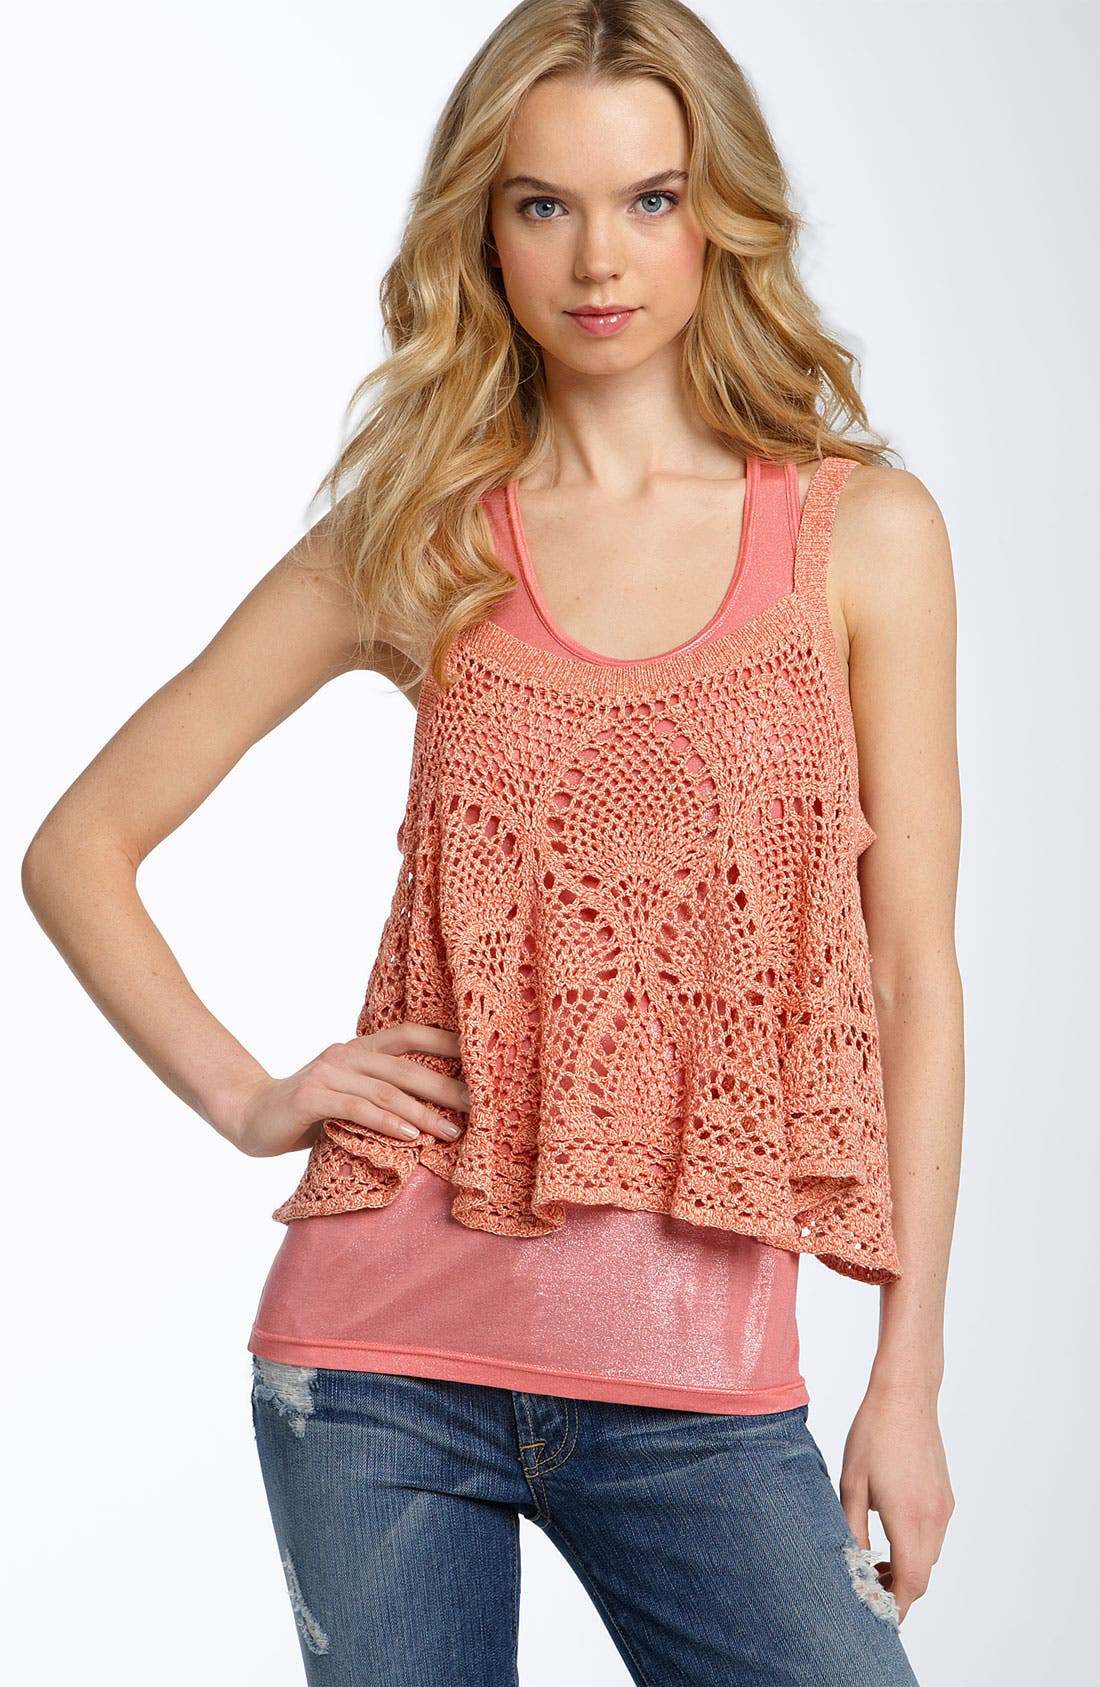 Alternate Image 1 Selected - Free People 'Carefree' Crochet Camisole